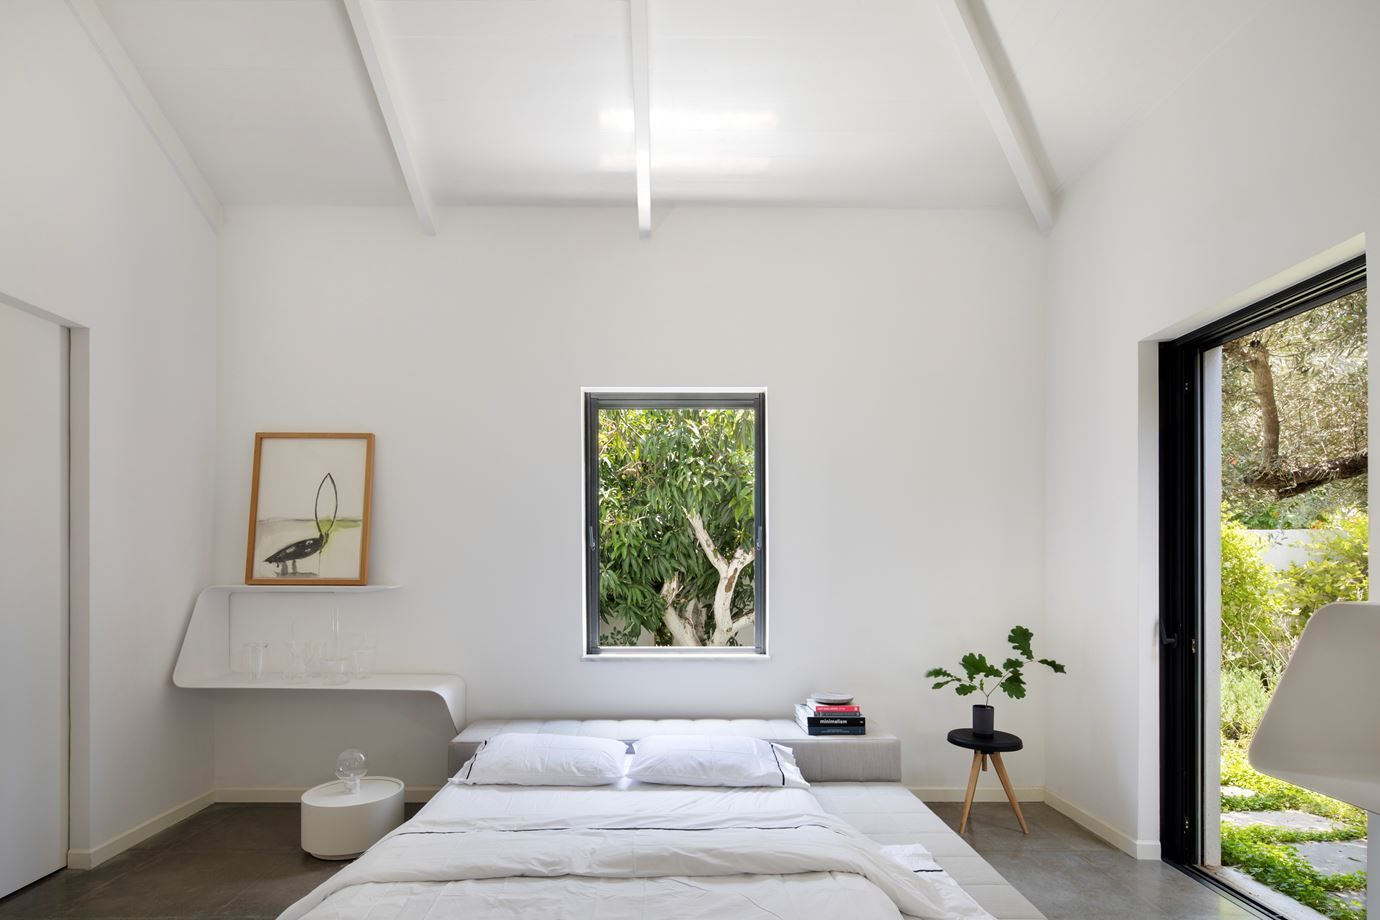 1560234223 126 try a minimalist bedroom design for less stress and a good nights sleep - Try a Minimalist Bedroom Design for Less Stress and a Good Night's Sleep